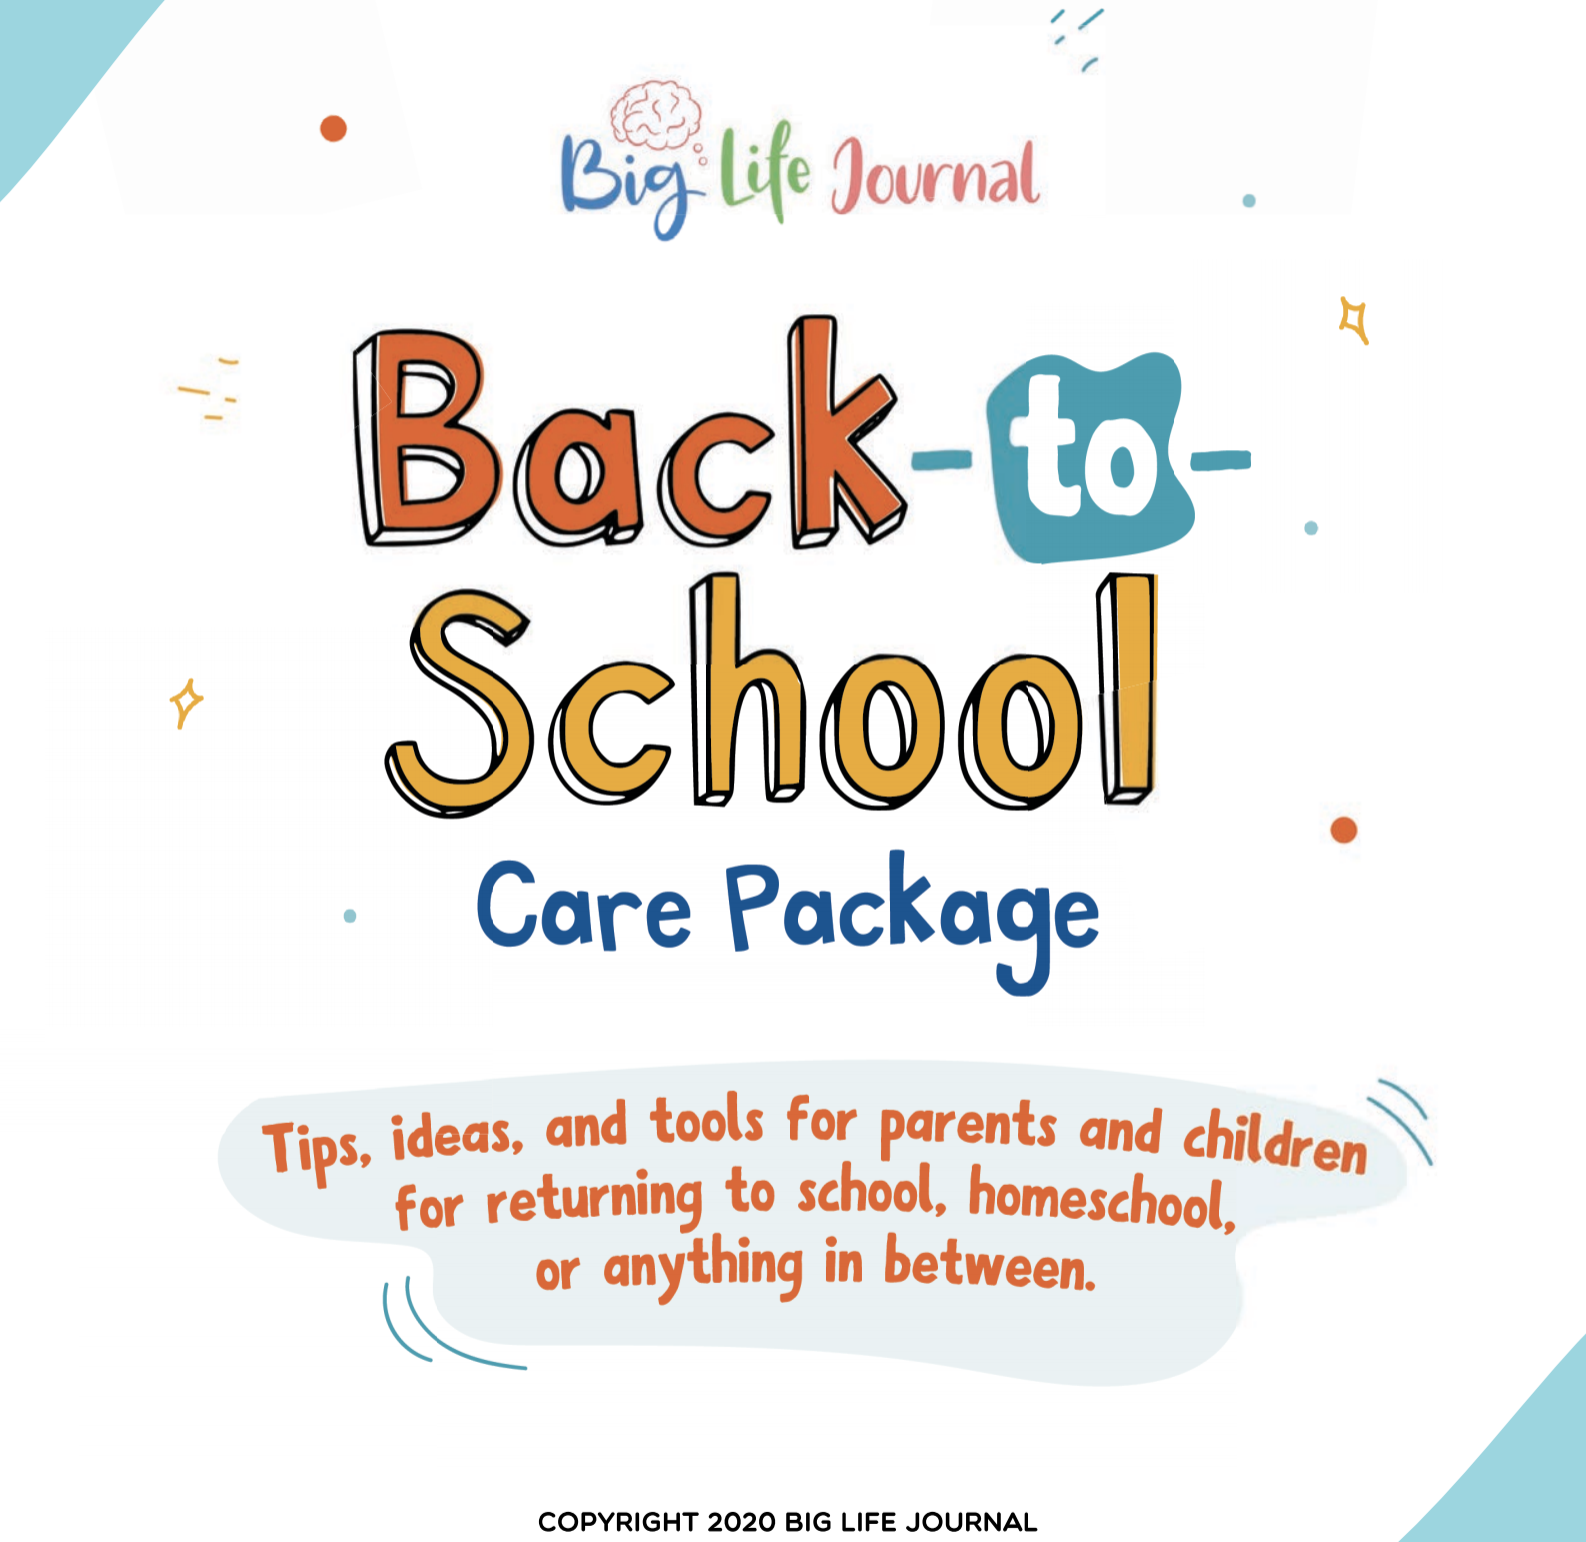 click here to view a back-to-school care package guide